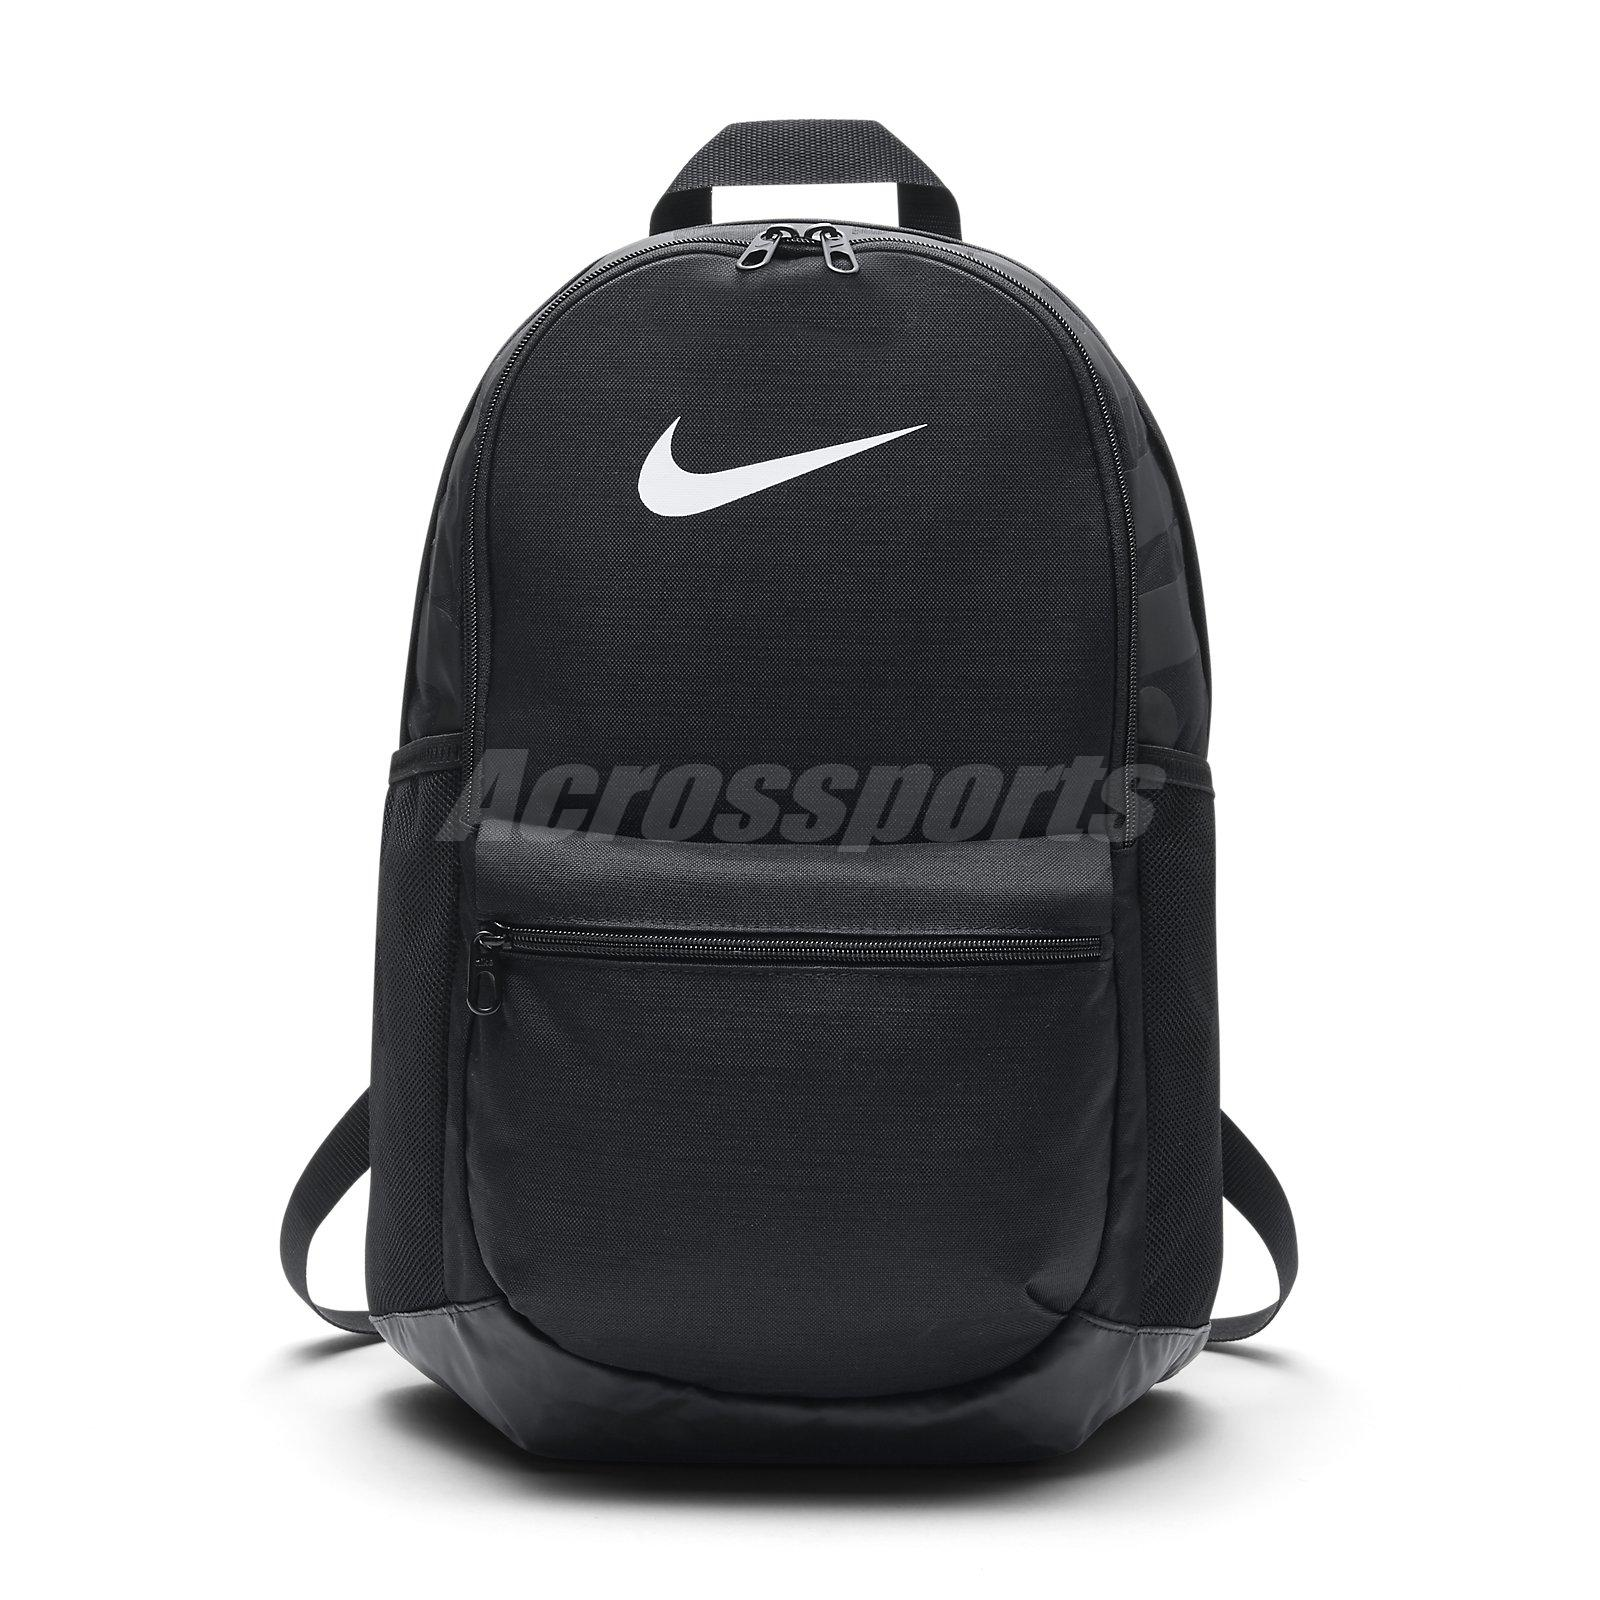 Details about Nike Unisex Brasilia Backpack Black White JDI Swoosh Sport  Book Bag BA5329-010 ae3cfb9e5175